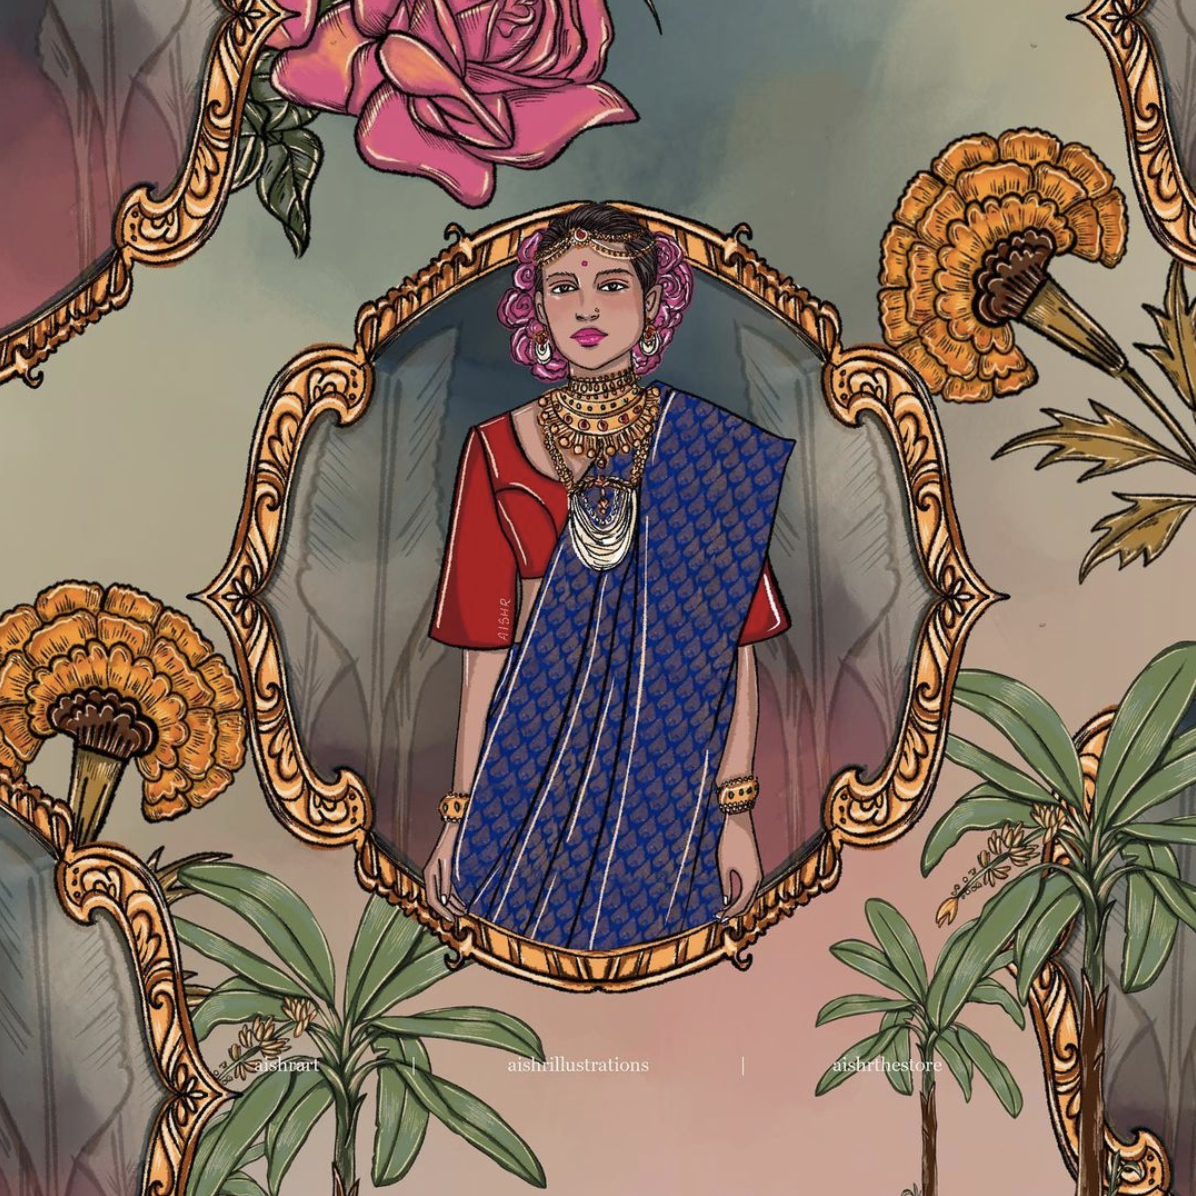 Illustration of an Indian woman wearing traditional costume surround by flowers